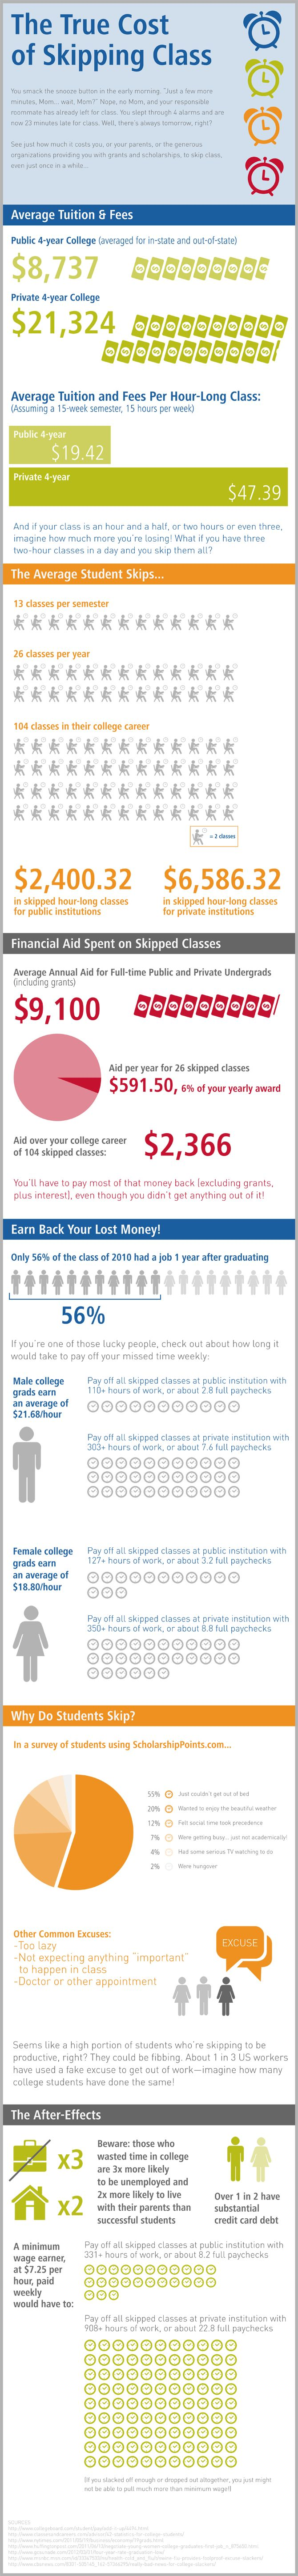 What Is The True Cost Of Skipping Class And Why Do Students Skip? Good for High Schoolers!